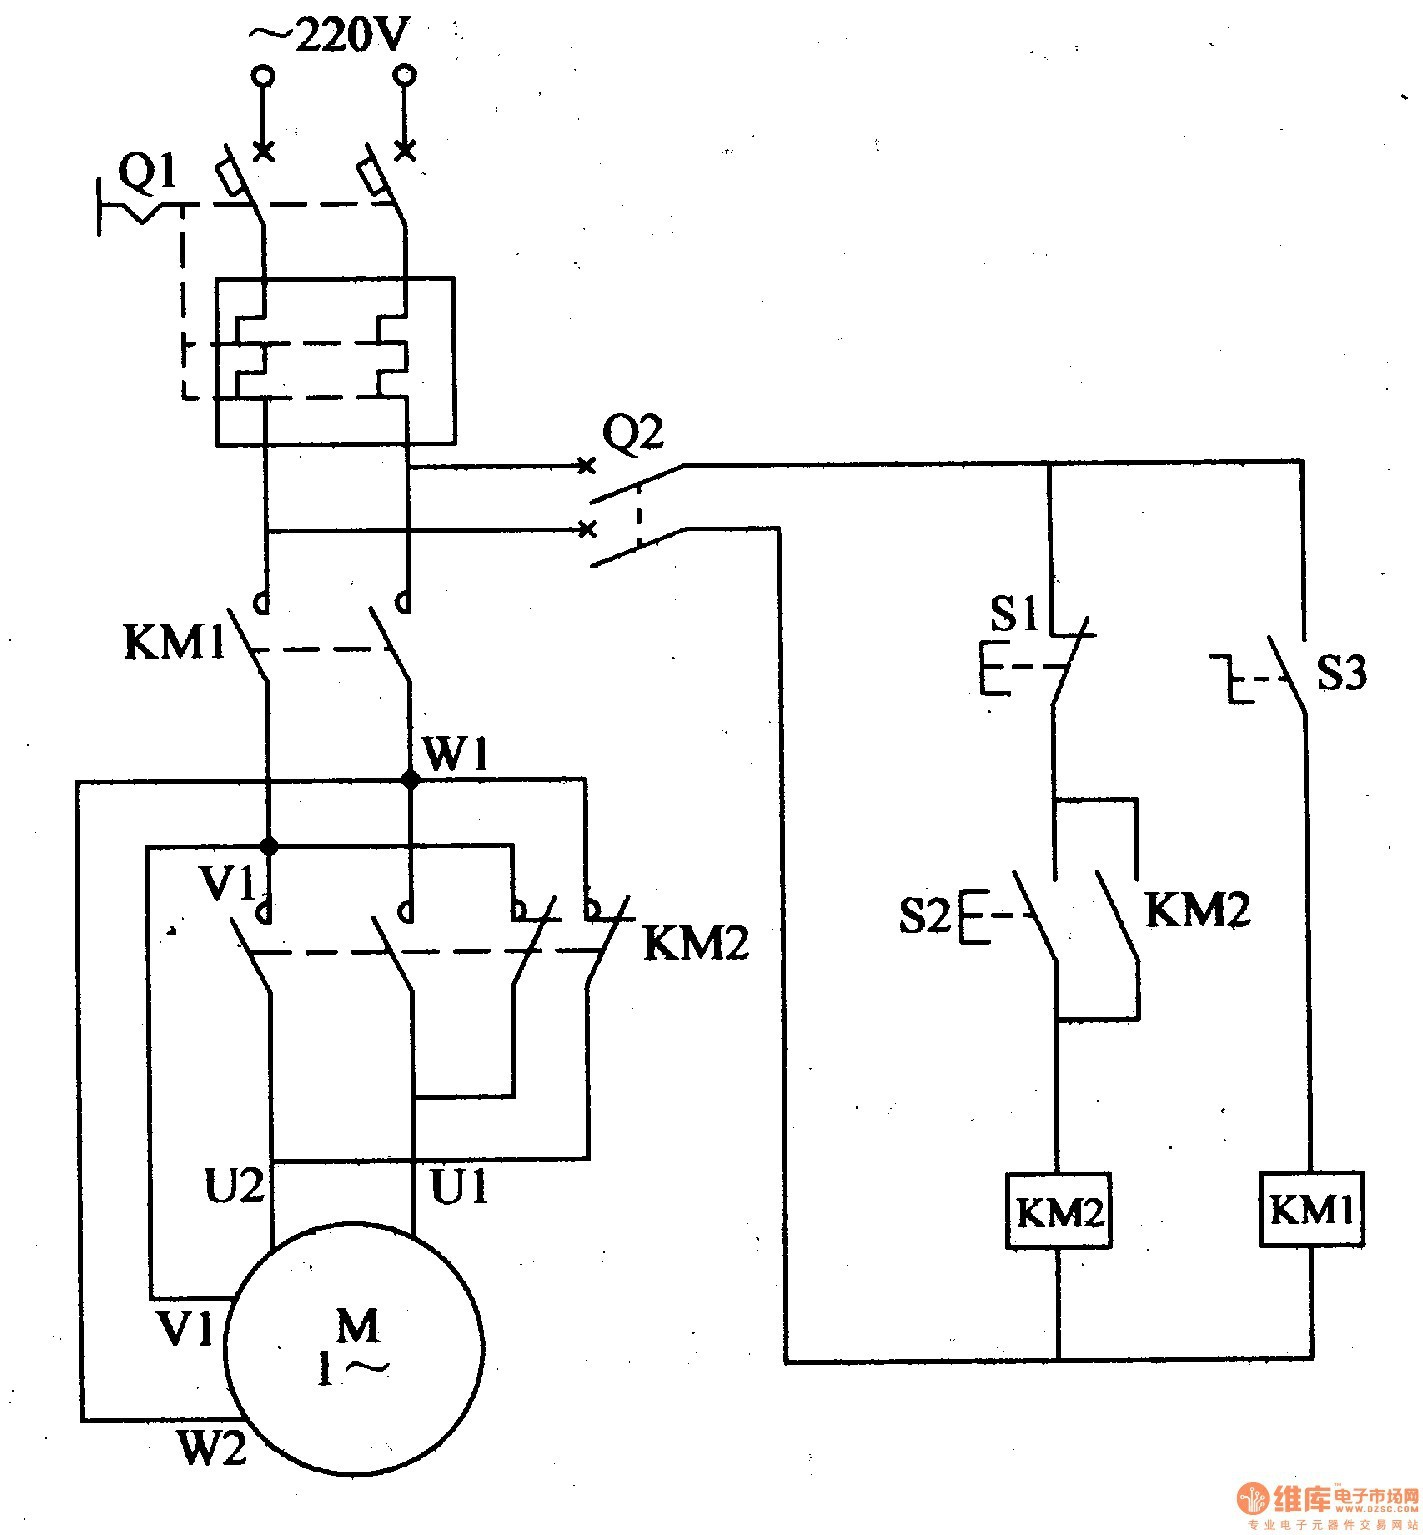 electric wire diagram for ev